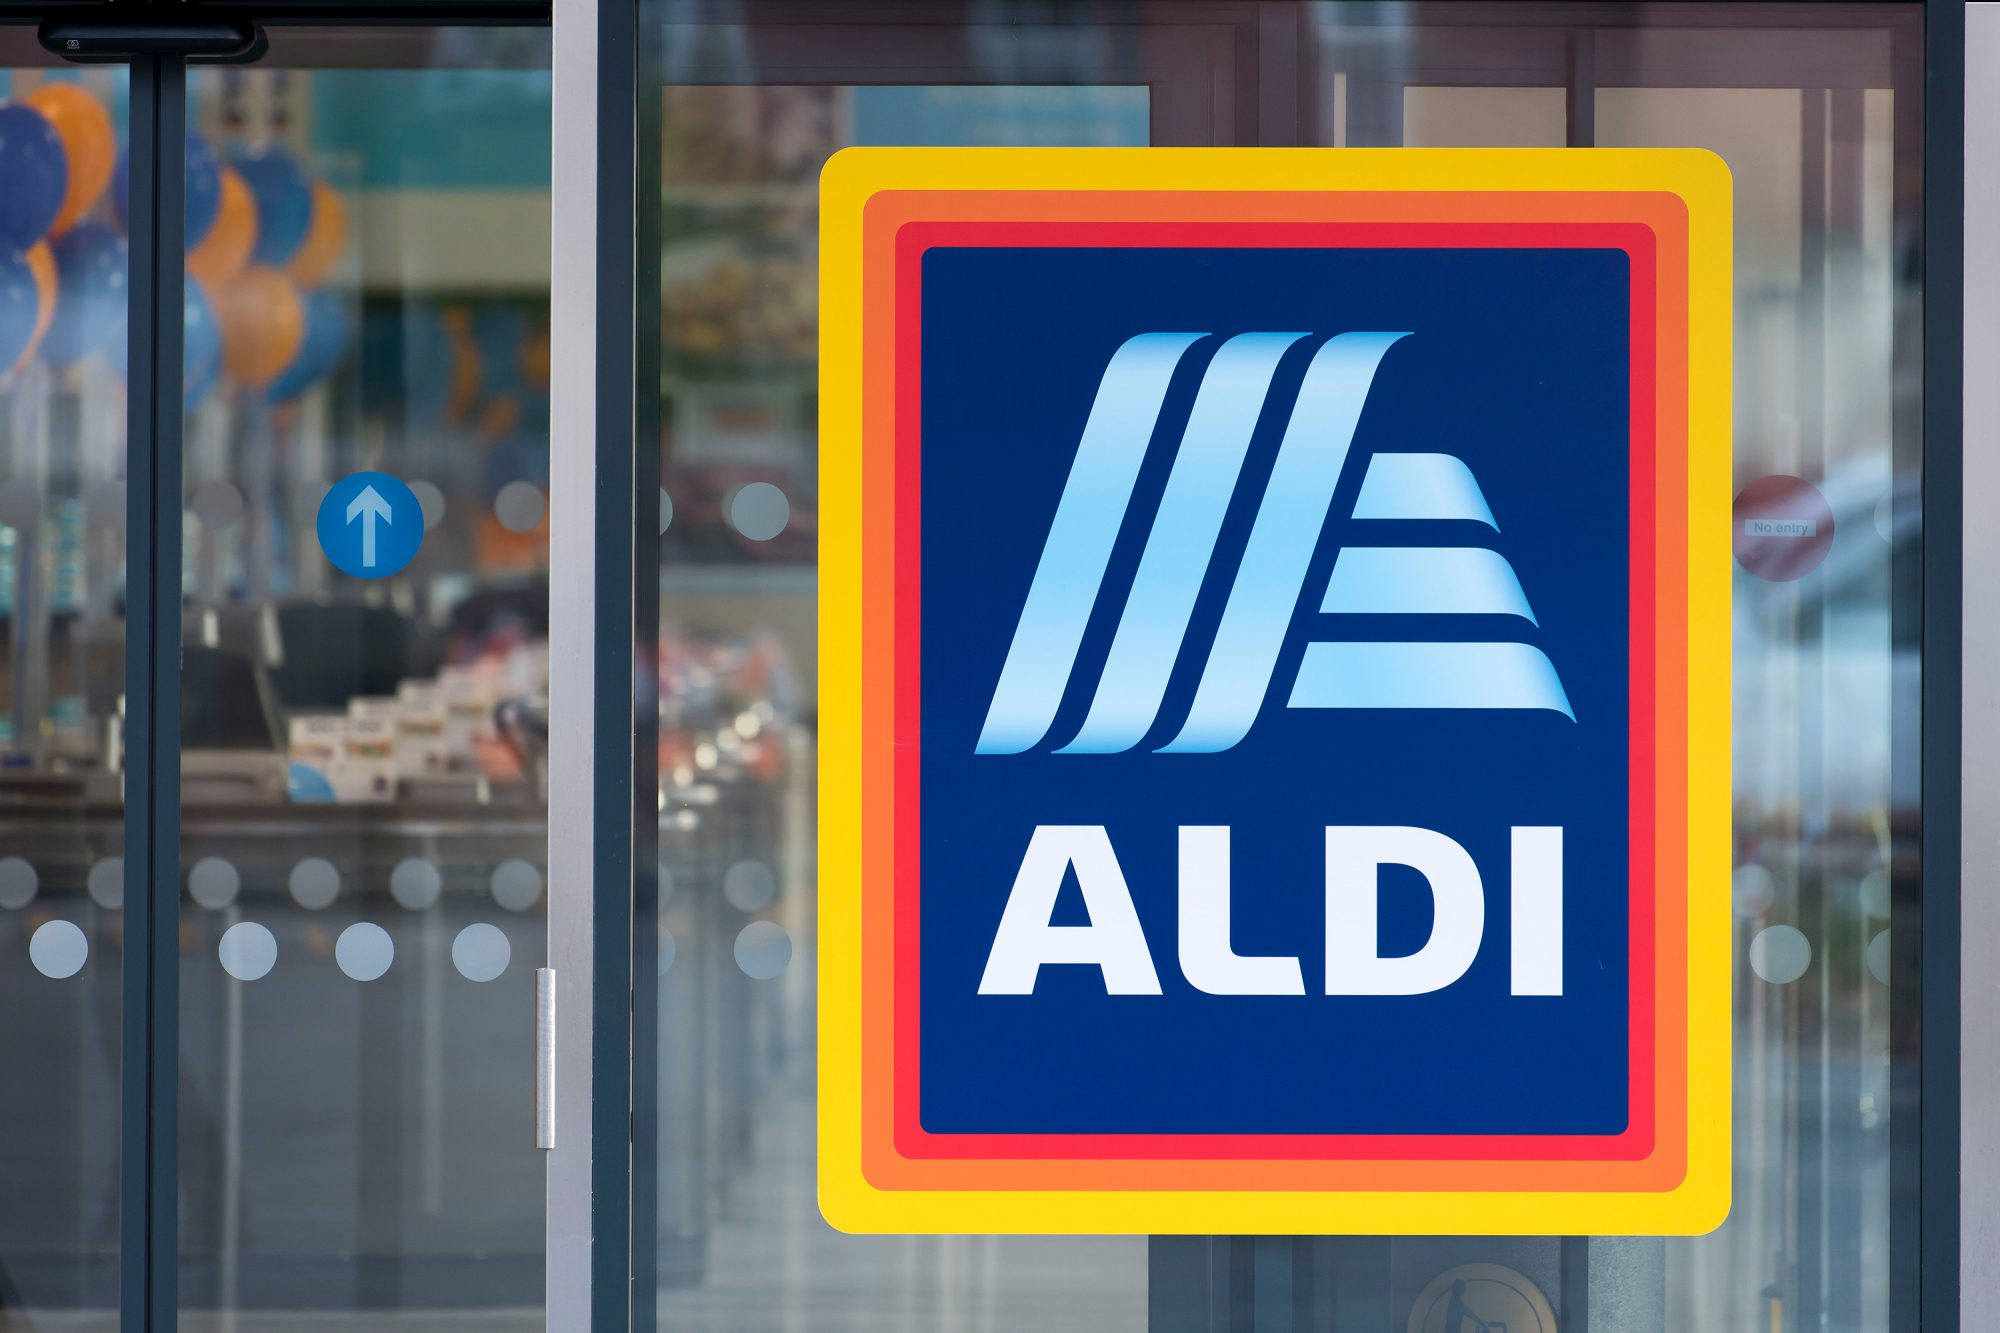 an aldi store sign on a glass window